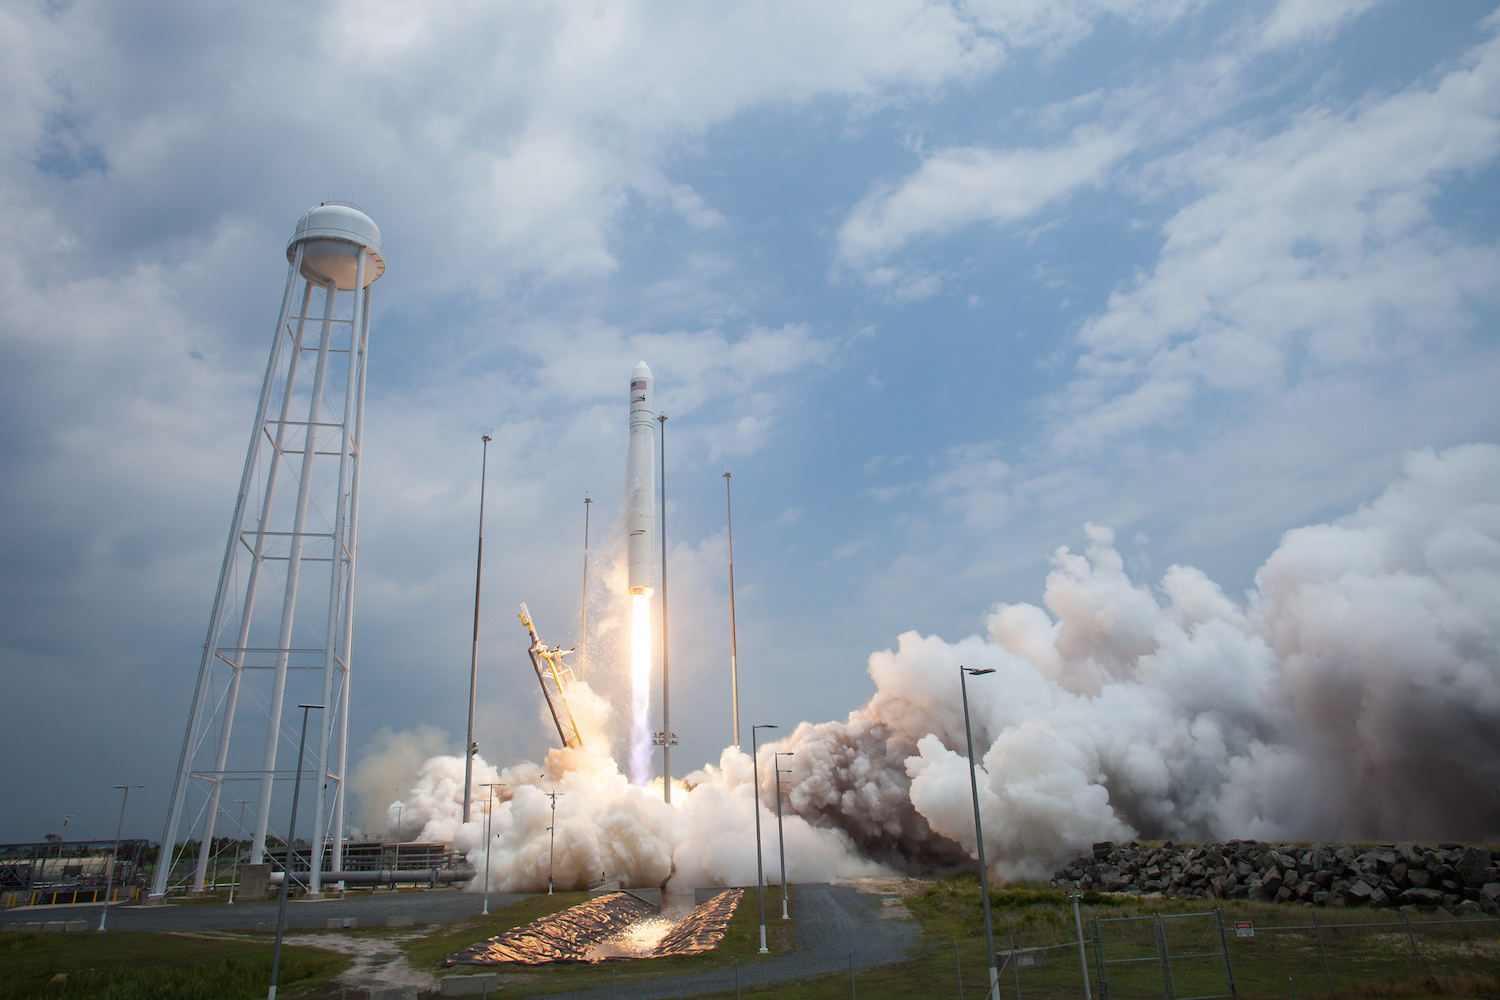 An Antares rocket lifts off from Wallops Island, Virginia, in July 2014. Credit: NASA/Bill Ingalls